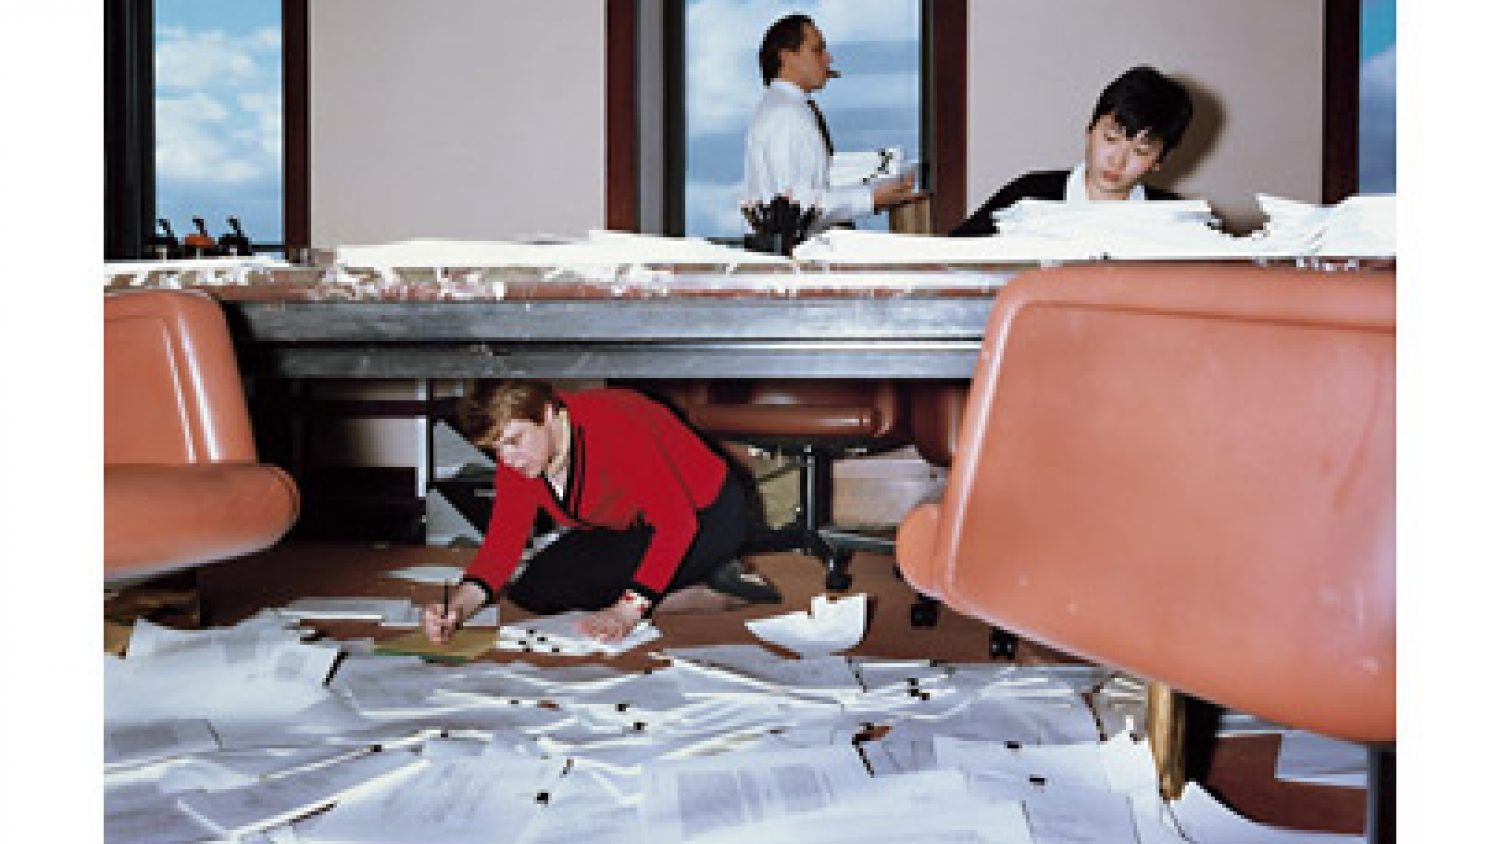 Lars Tunbjork. Lawyers office, New York, 1997